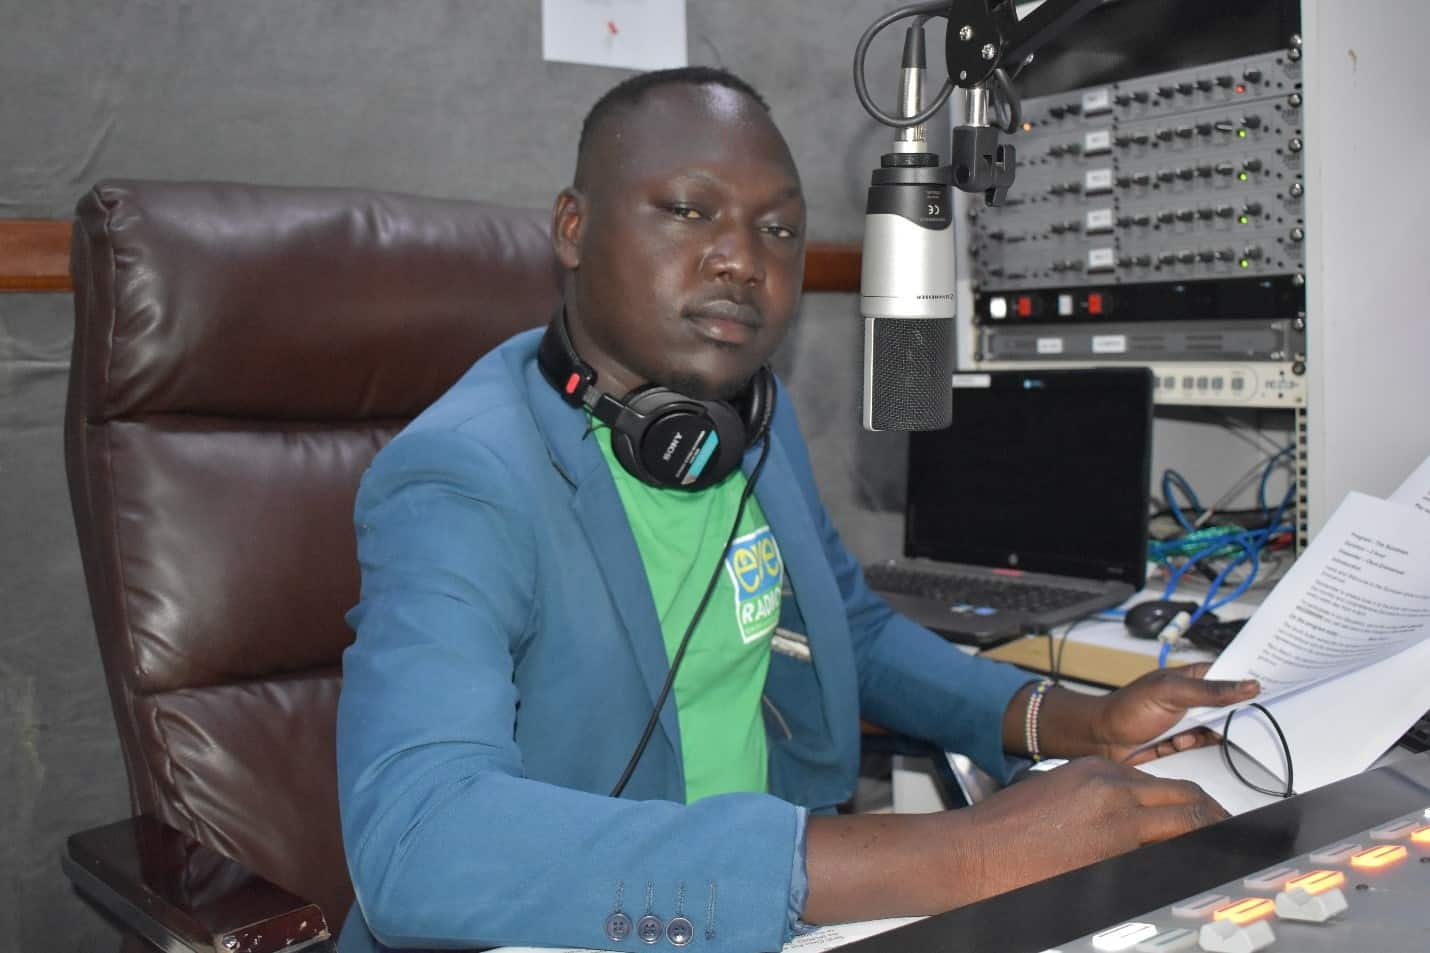 A man sits in front of a mic in a radio studio